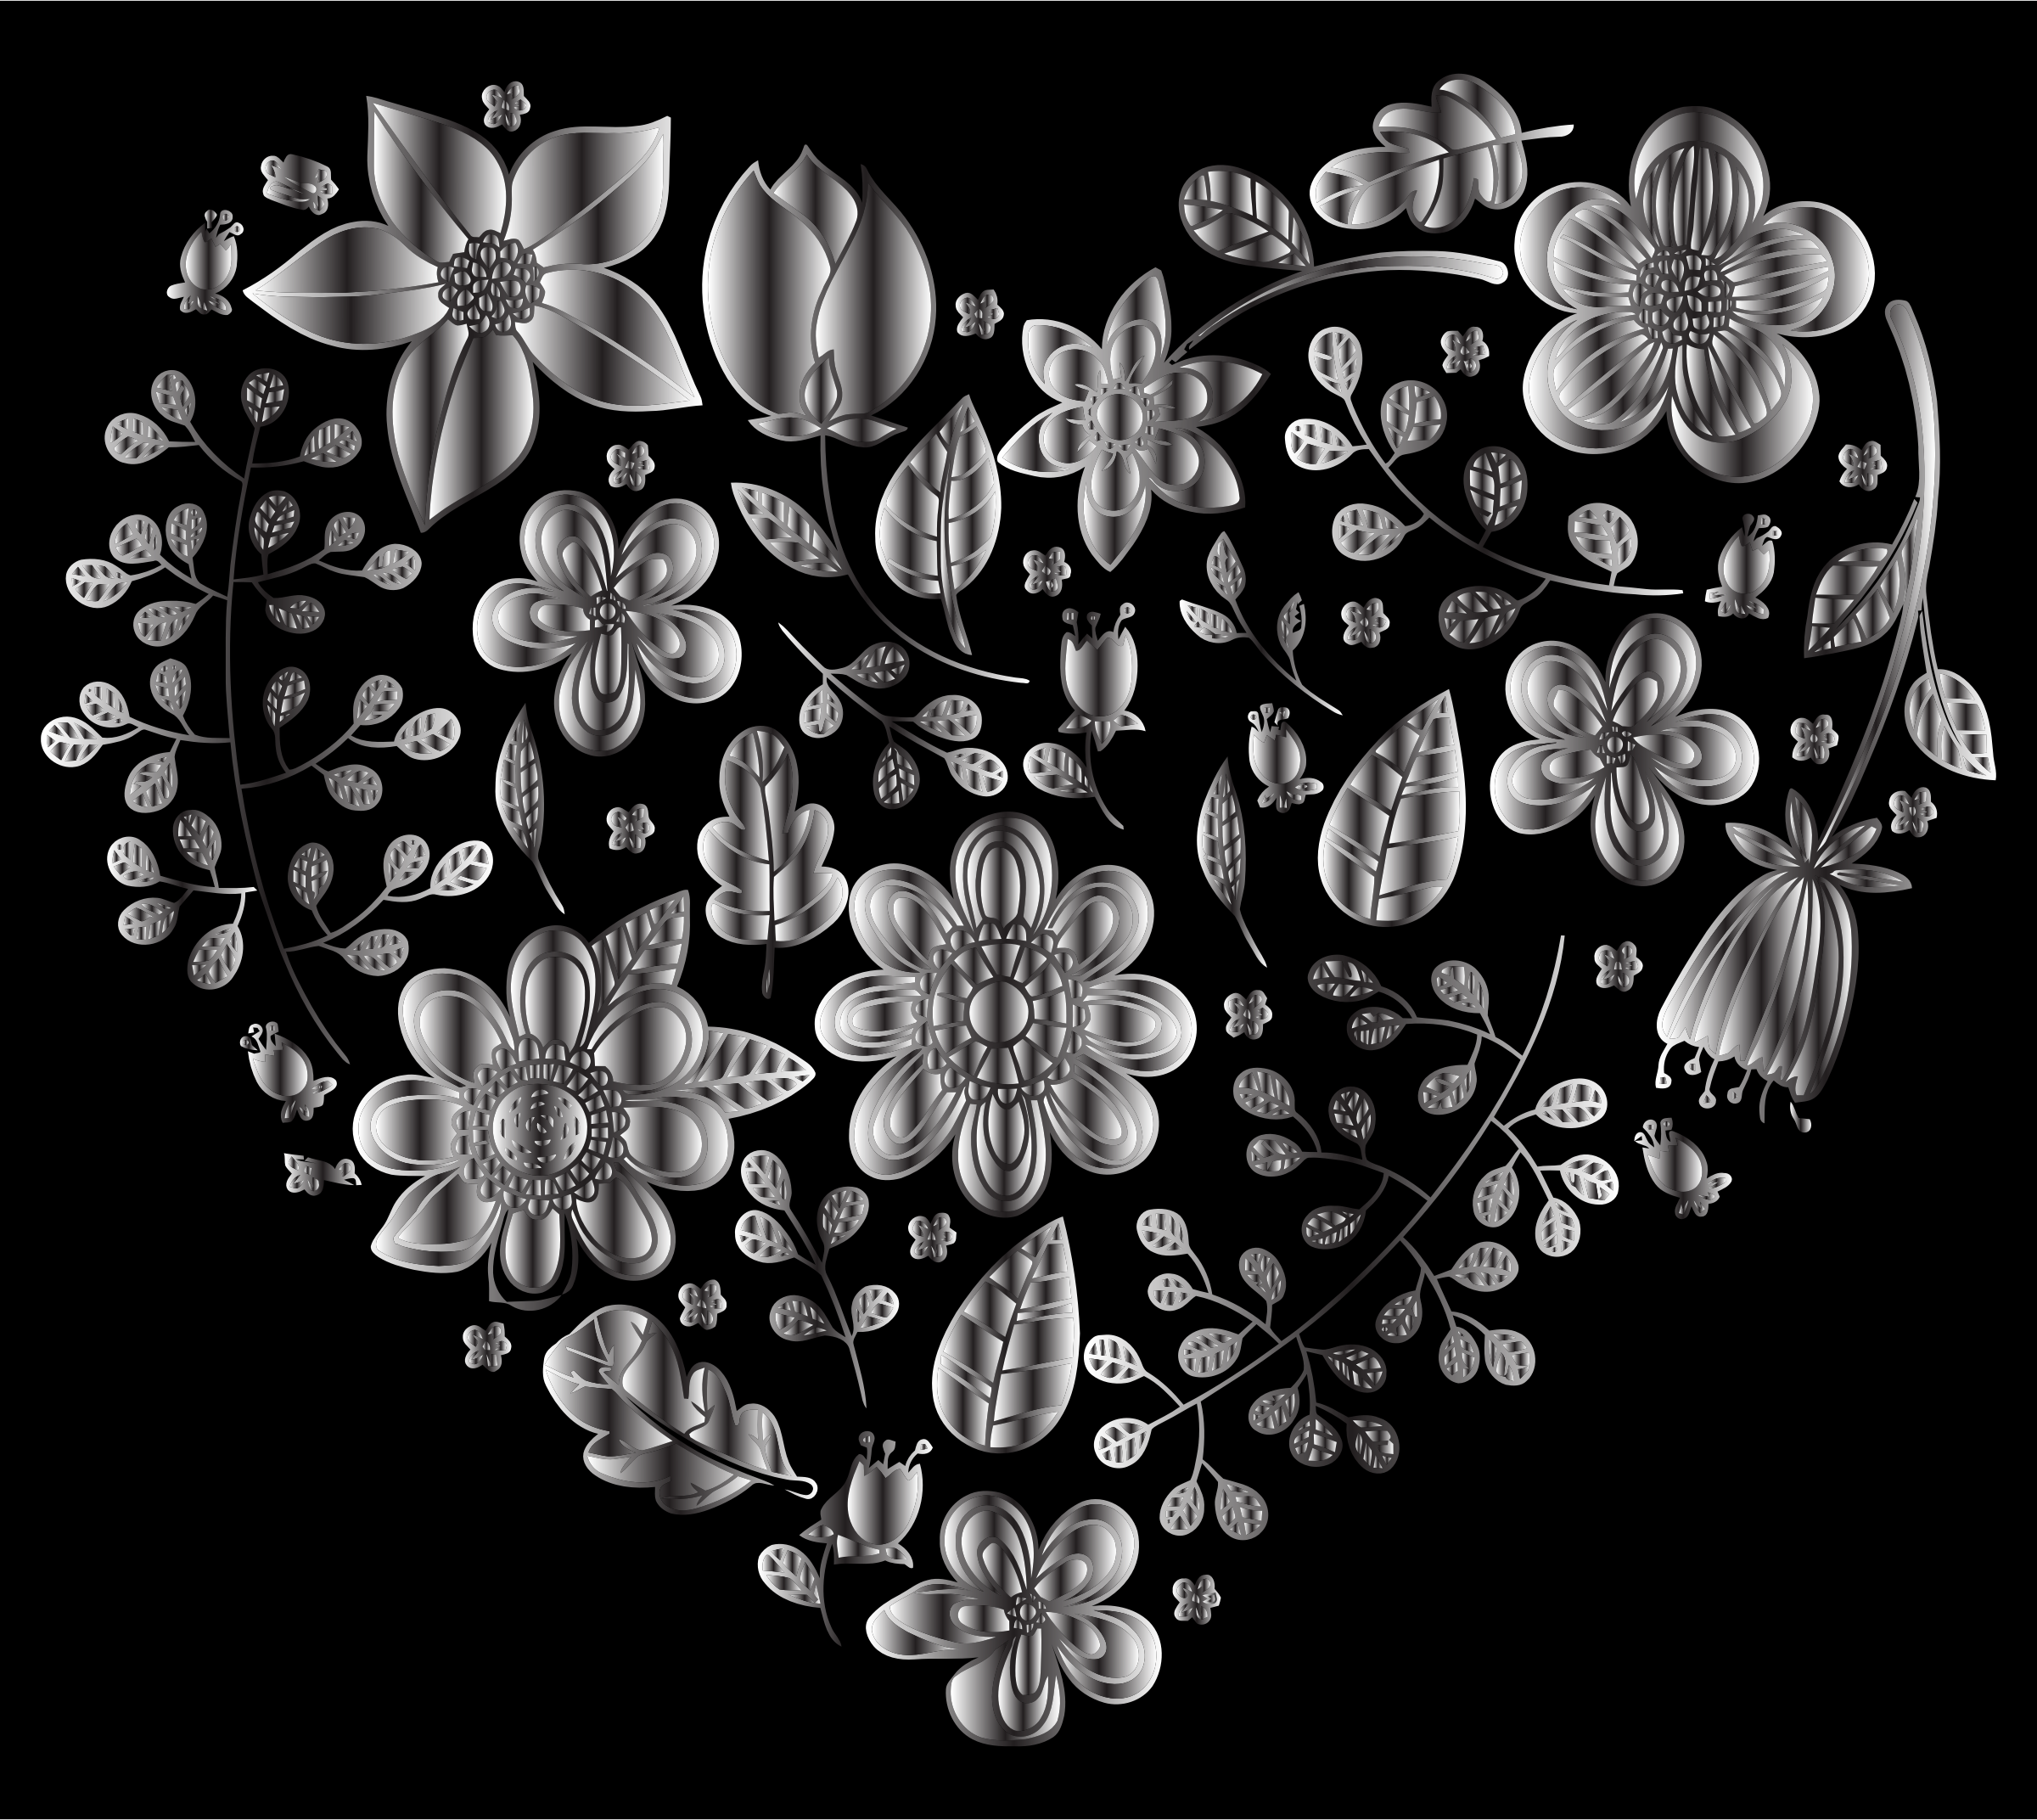 Grayscale Floral Heart 2 by GDJ